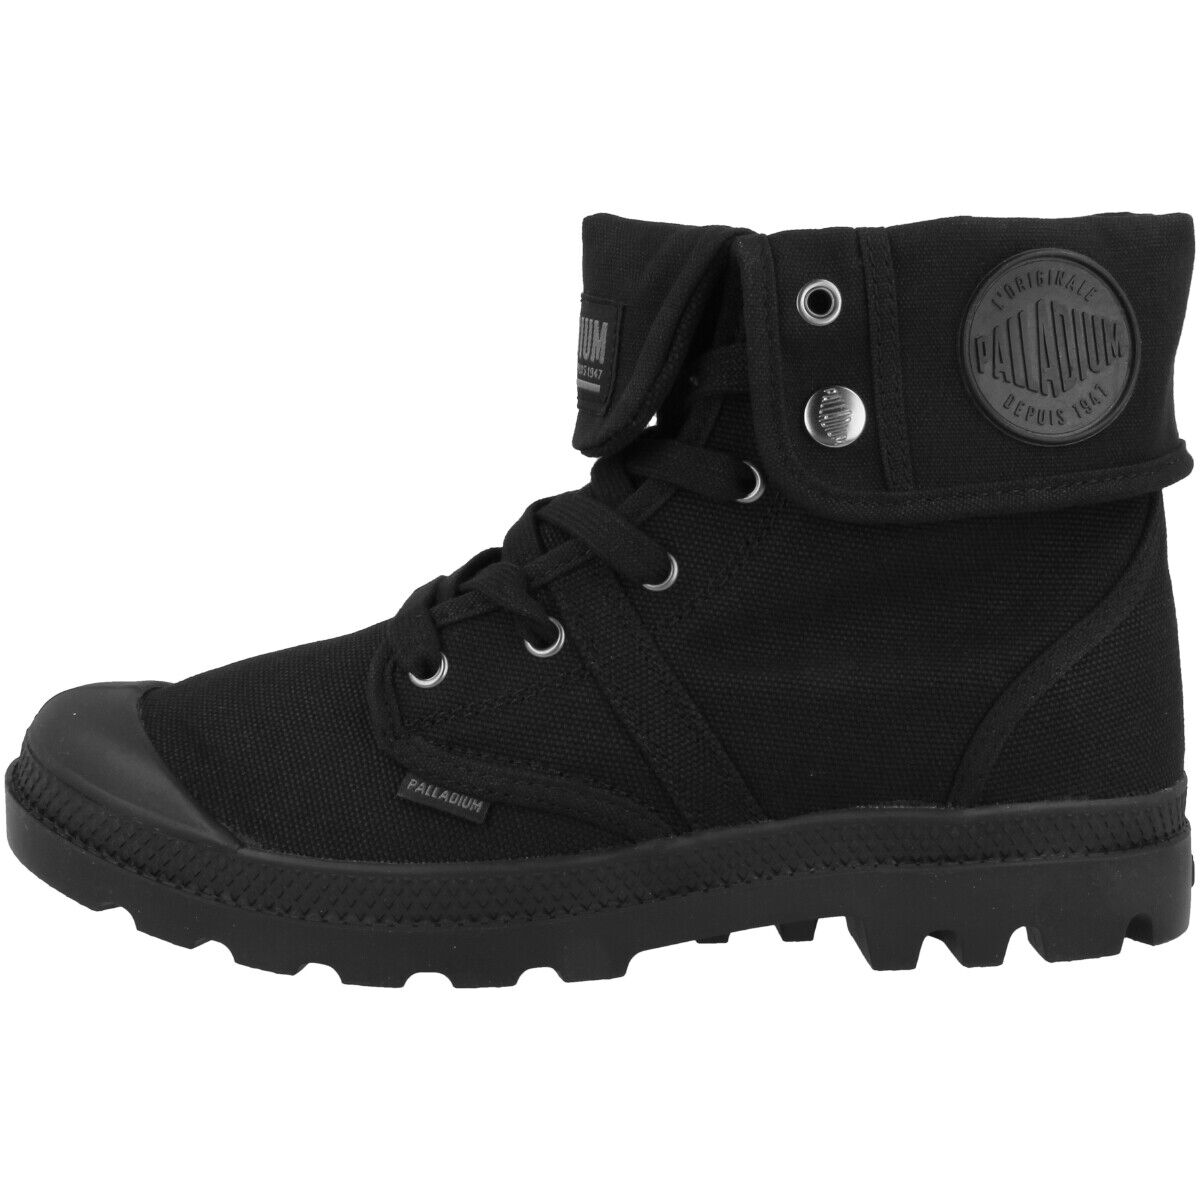 Palladium Pallabrouse Baggy Boots shoes High Top Sneaker Boots 02478-001